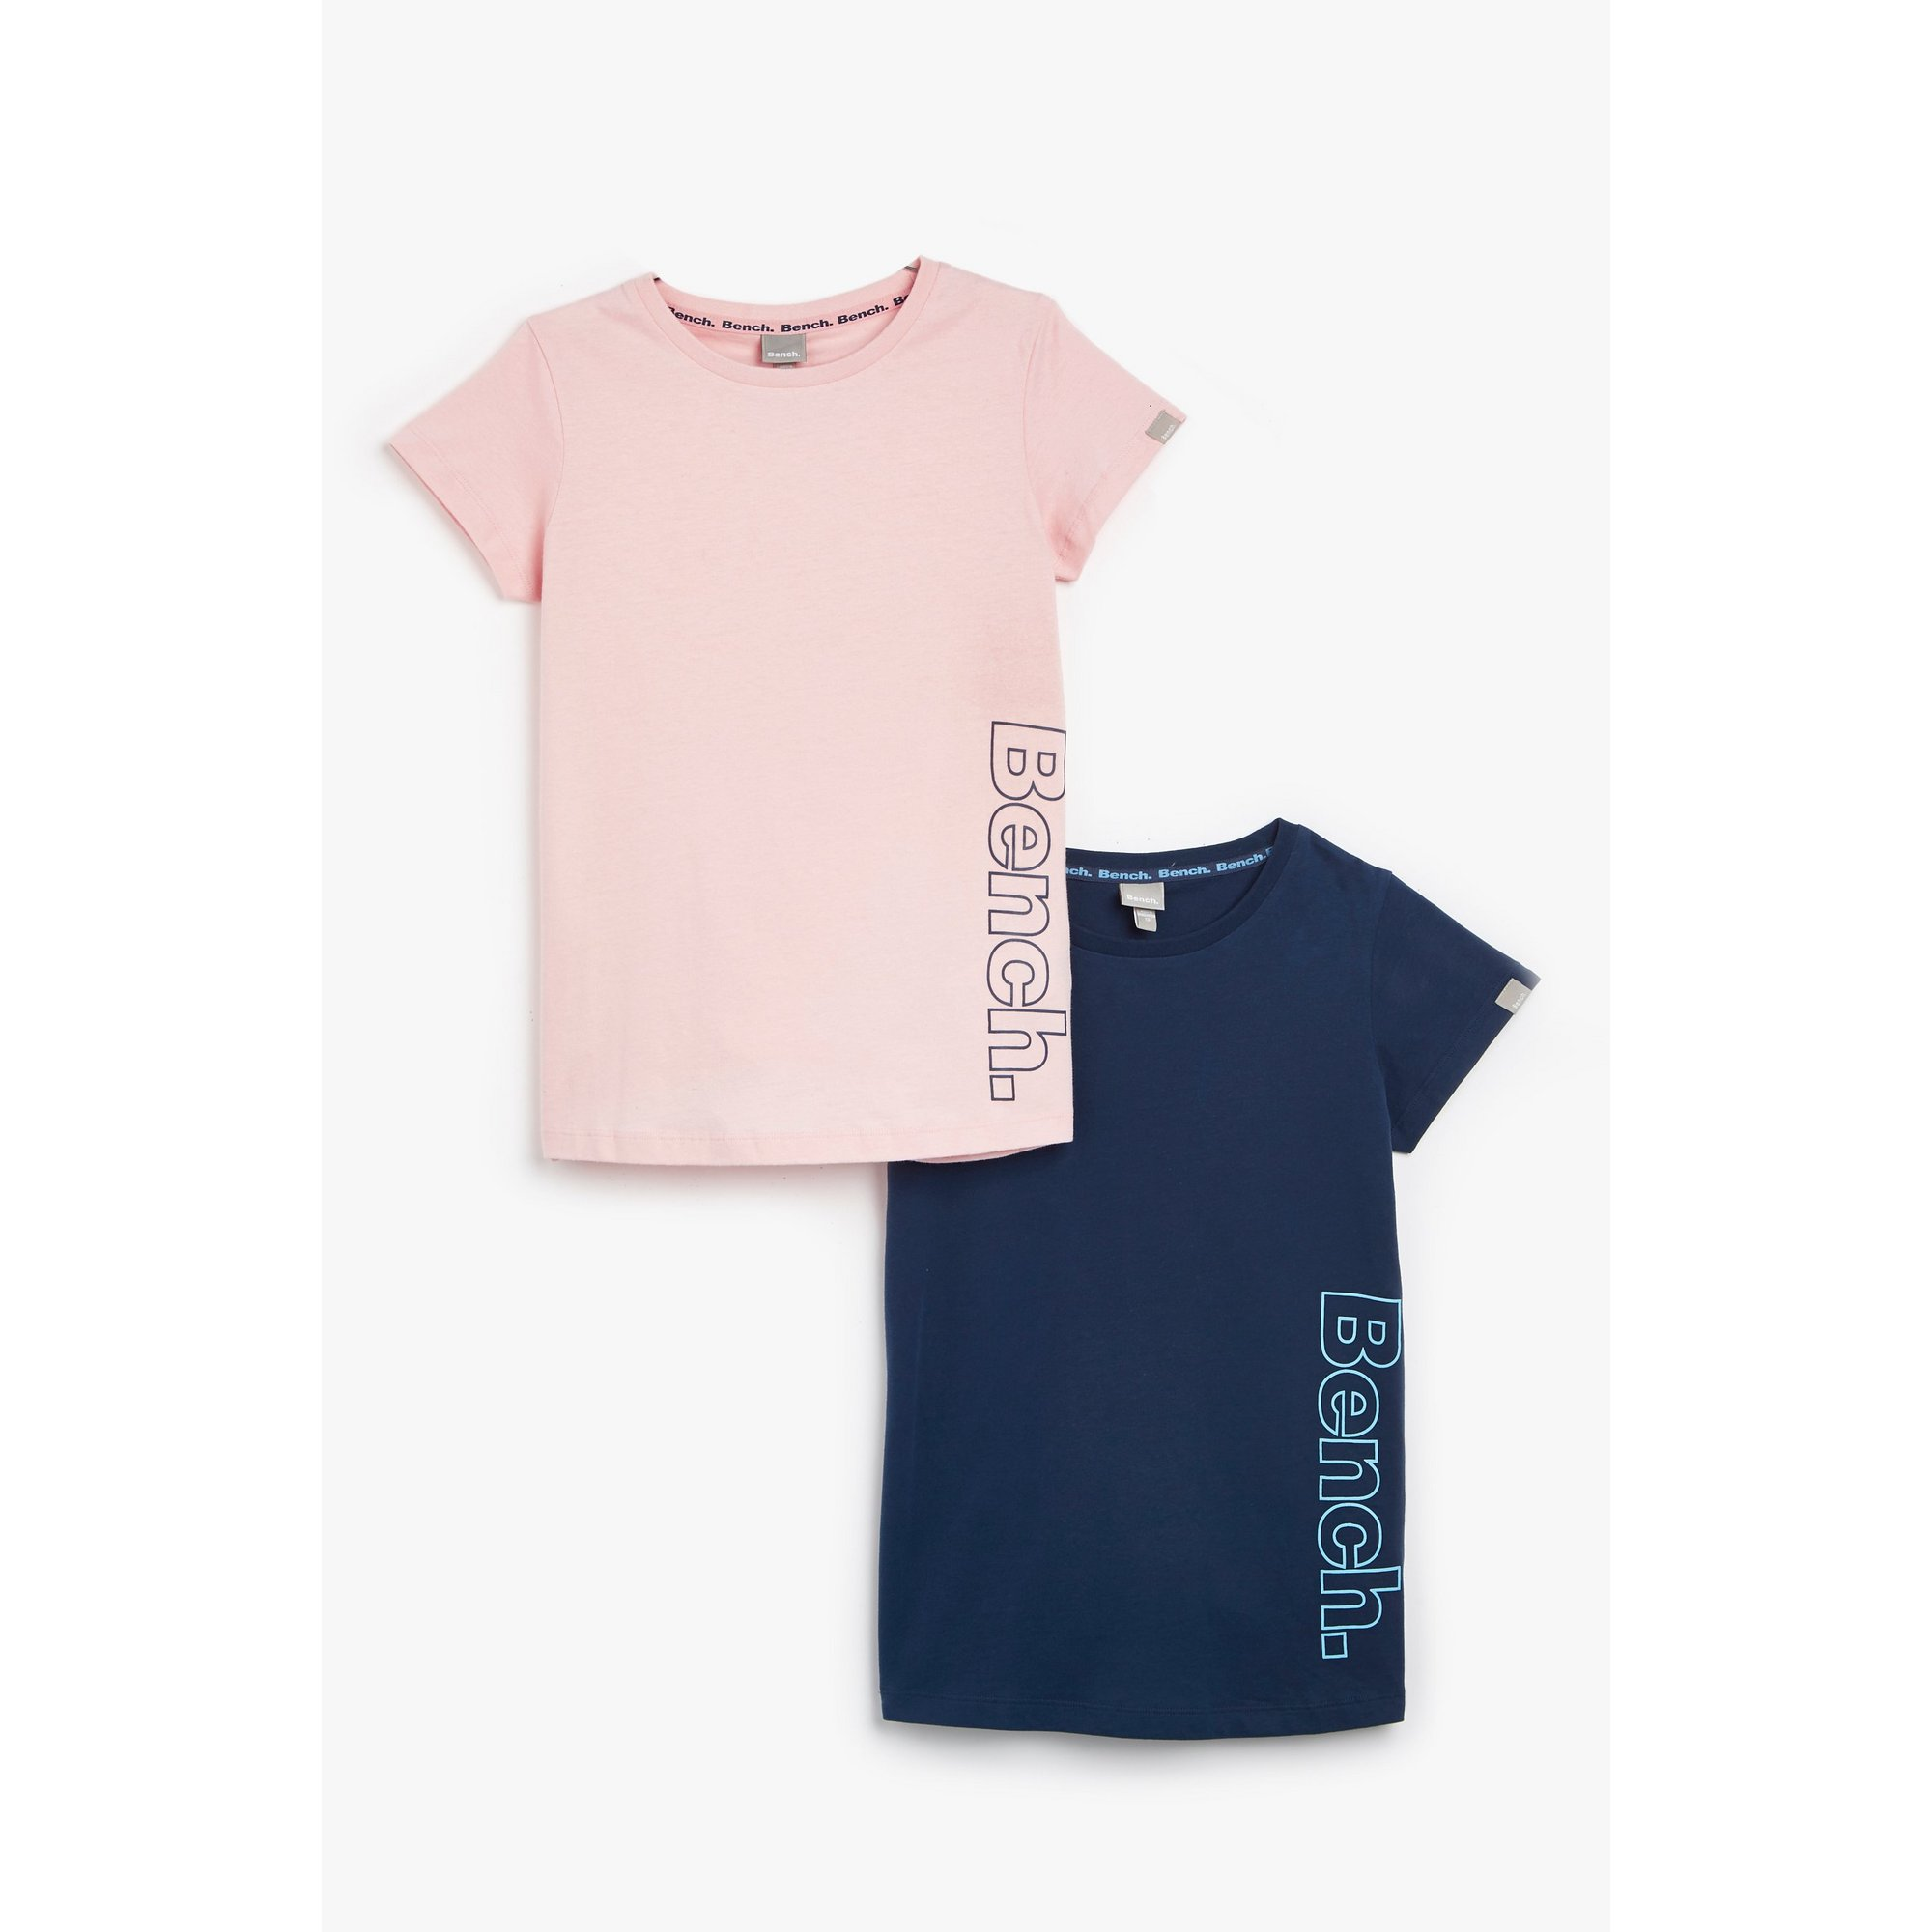 Image of Girls Bench Pack of 2 Callen T-Shirts